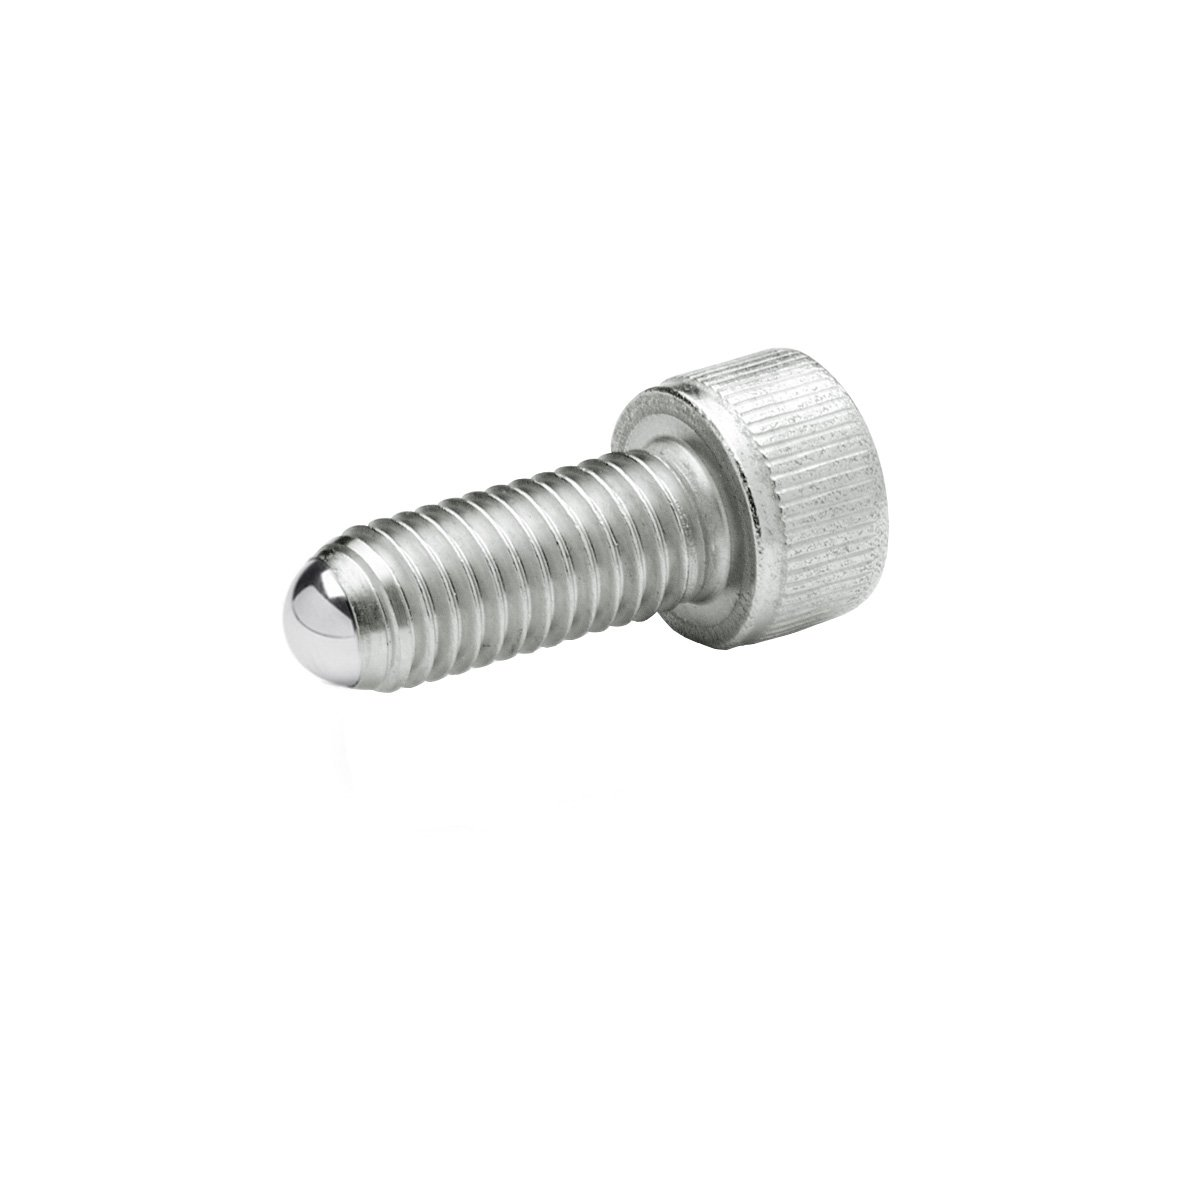 Stainless Steel Ganter M12 x 80 mm Thread Length J.W Winco 12N80P48//AN GN606-NI Socket Head Cap Screw with Full Ball End